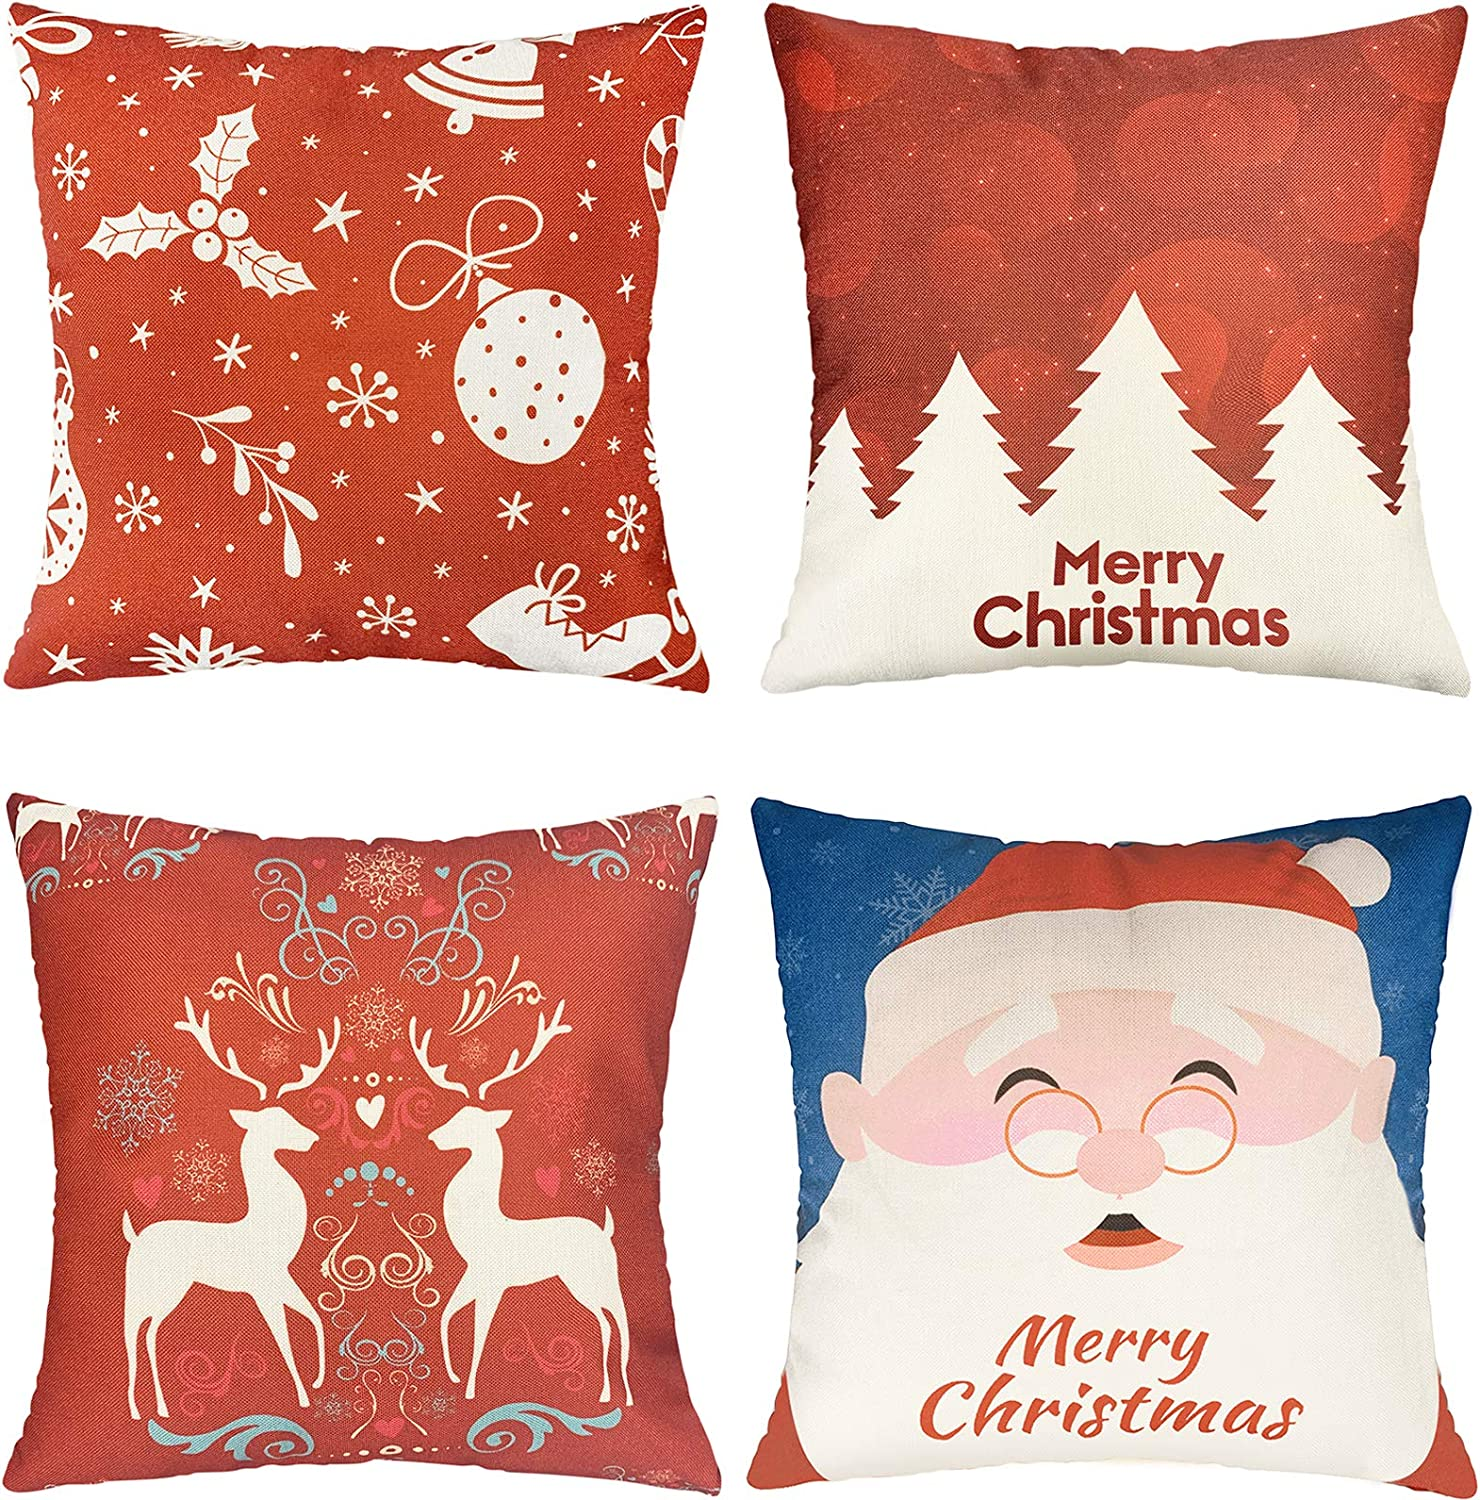 UVOGOM Christmas Pillow Covers 18X18 Set of 4, Decorative Throw Pillow Covers Square Cushion Pillowcase for Sofa Couch Bedroom Car Home Decoration